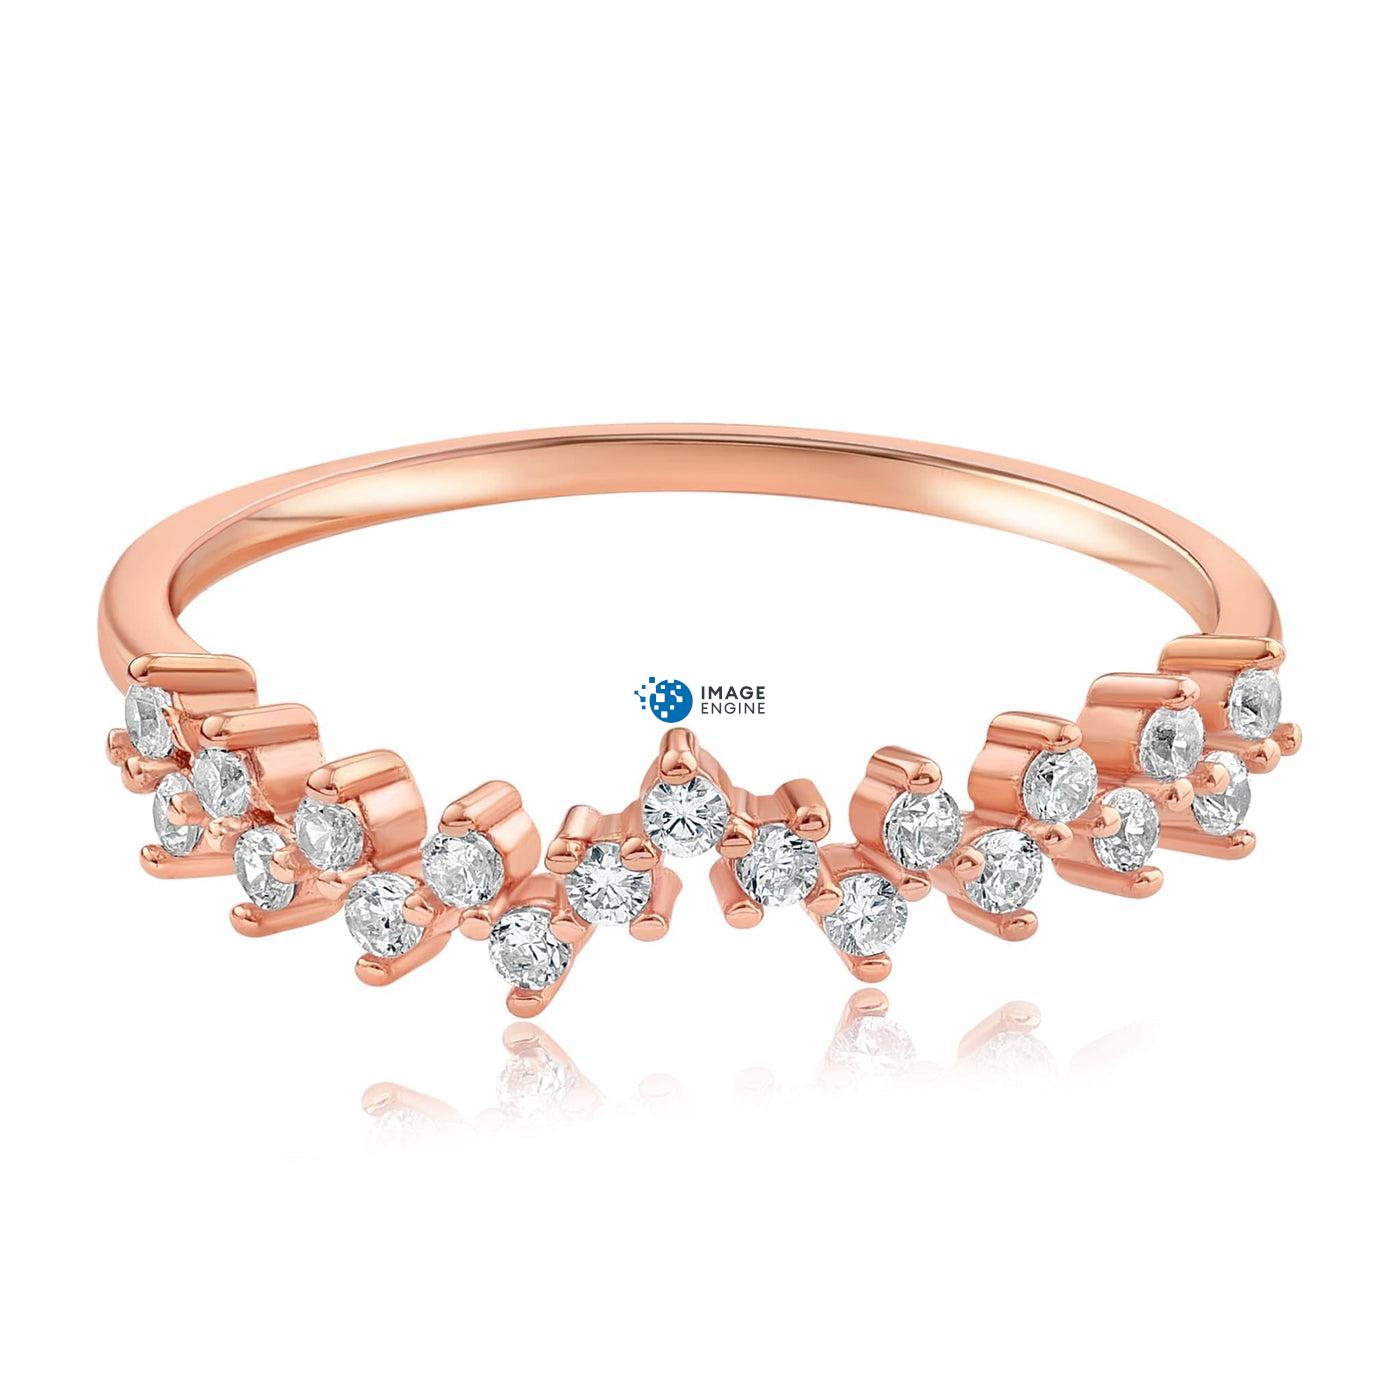 Esther Petite Cluster Ring - Front View Facing Down - 18K Rose Gold Vermeil